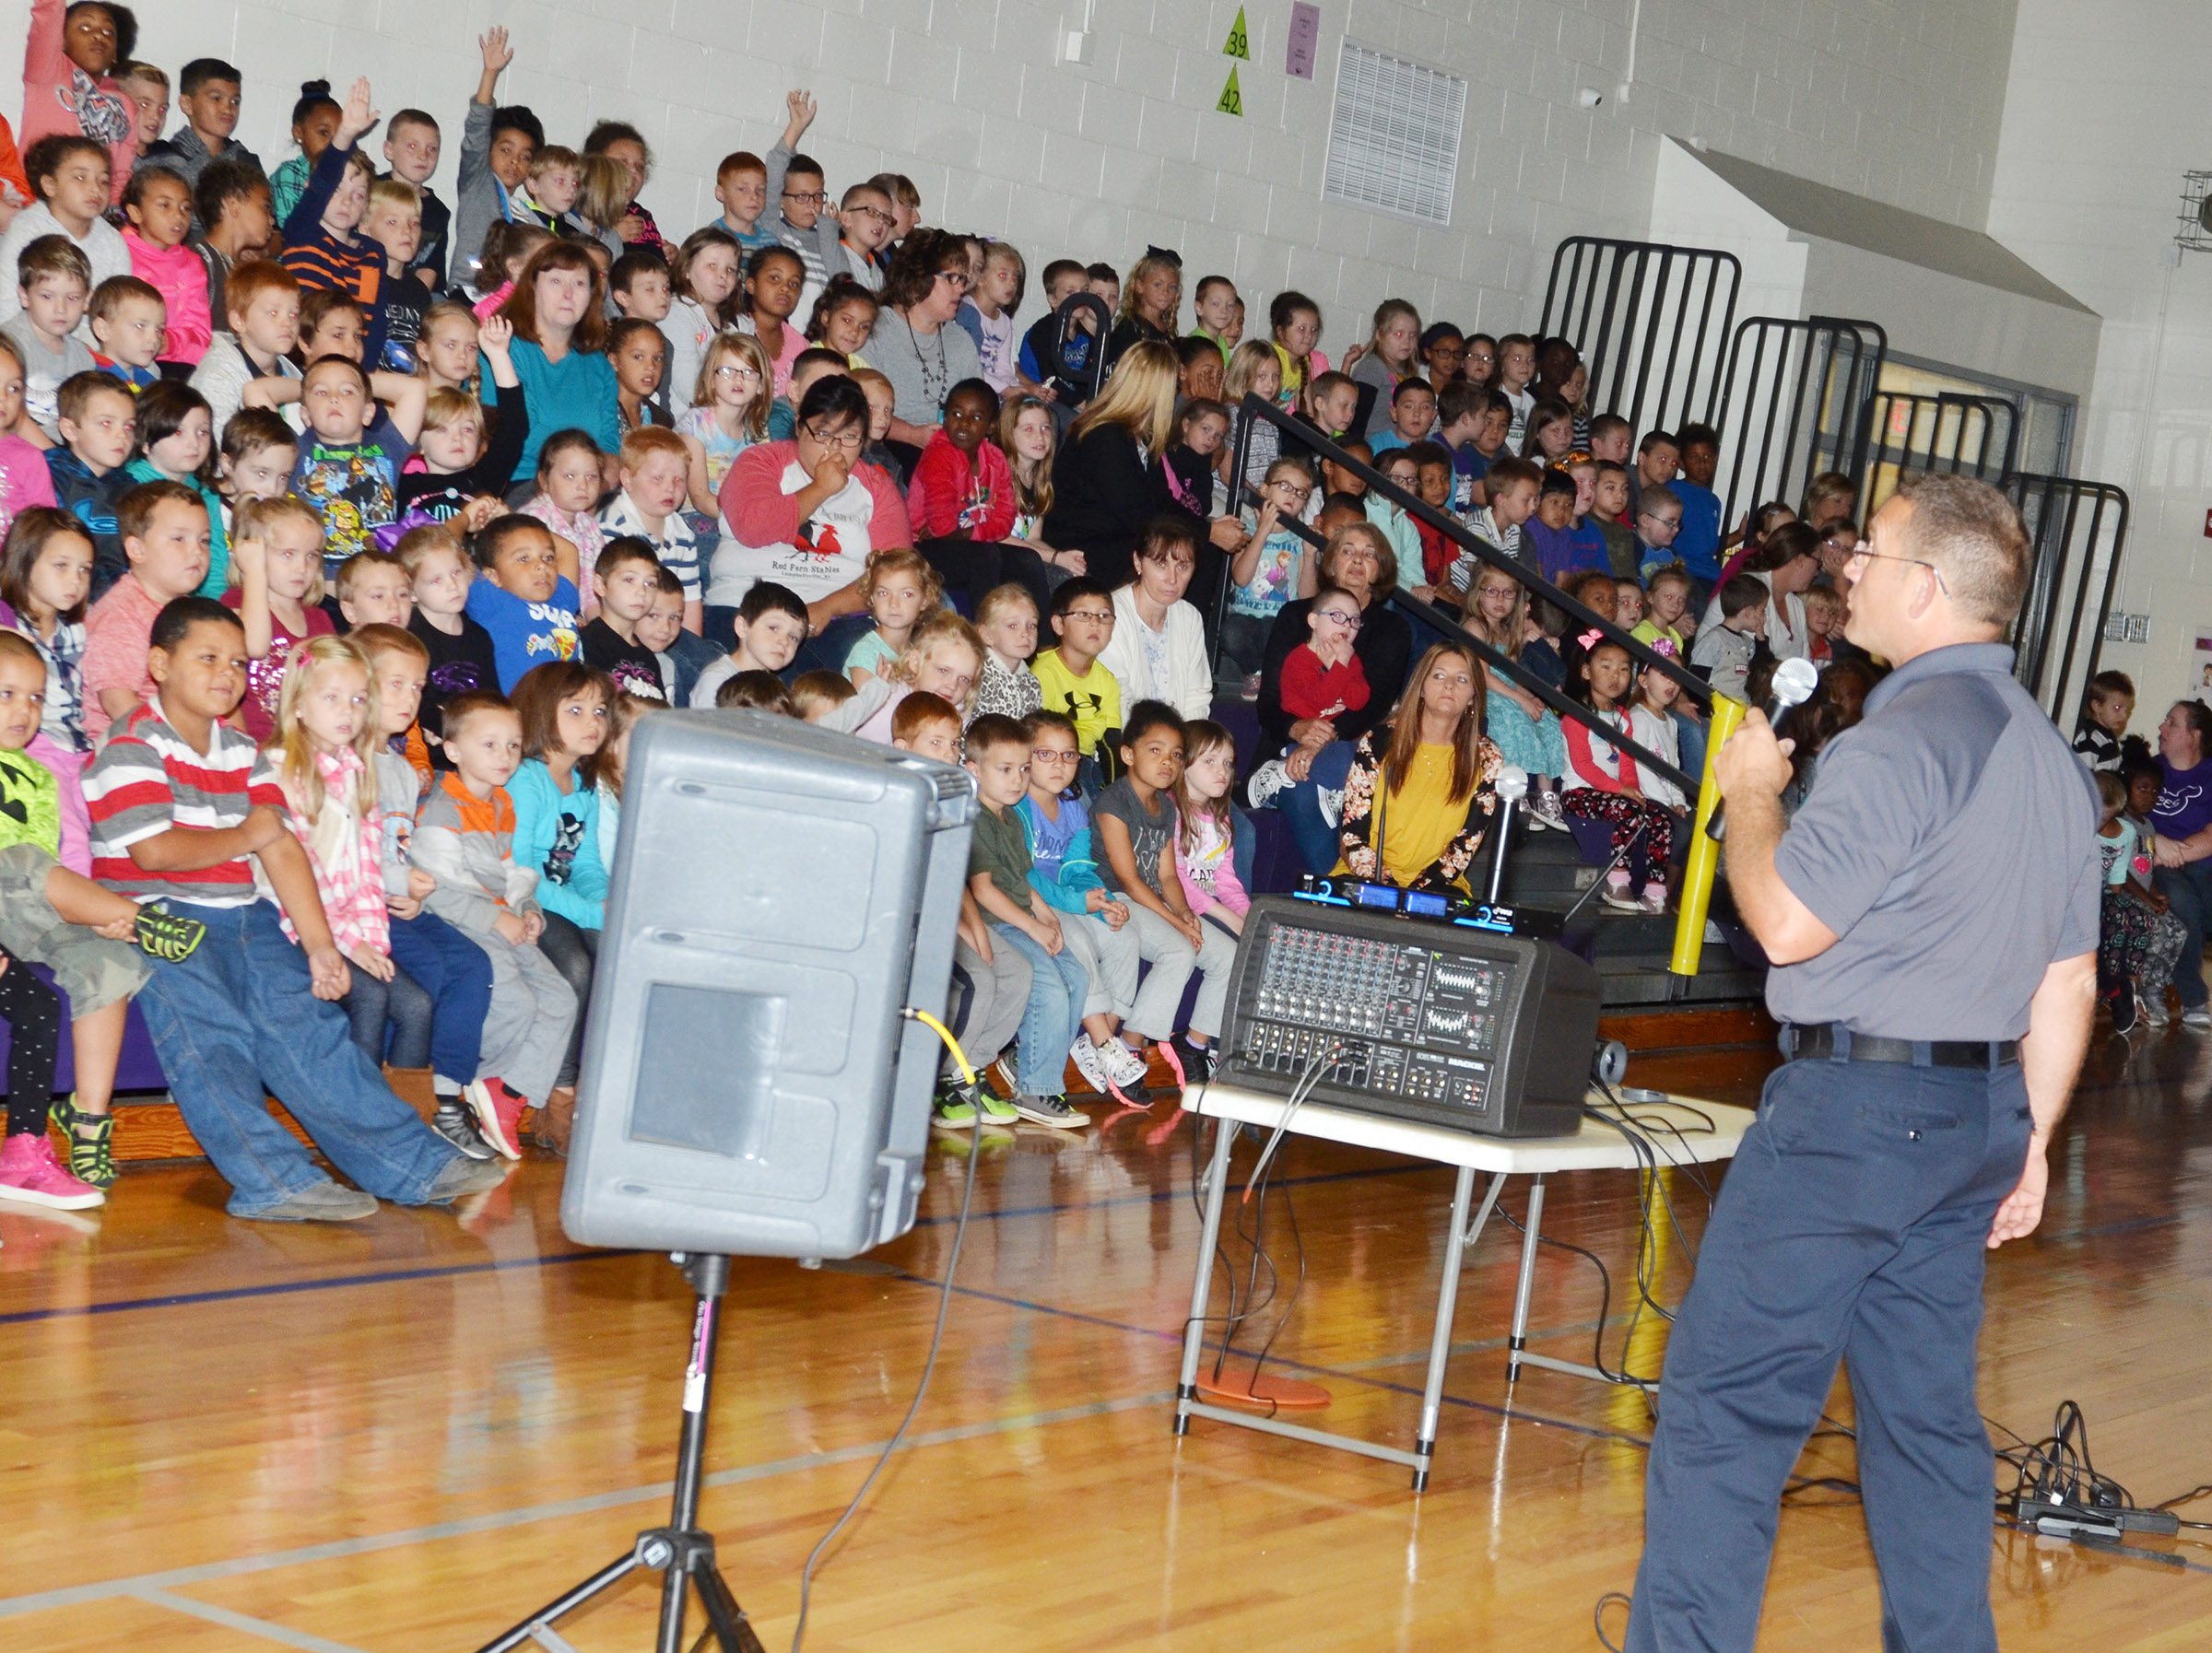 Campbellsville Fire & Rescue Captain Keith Bricken talks to CES students about why every family should have a meeting spot in case of a fire.